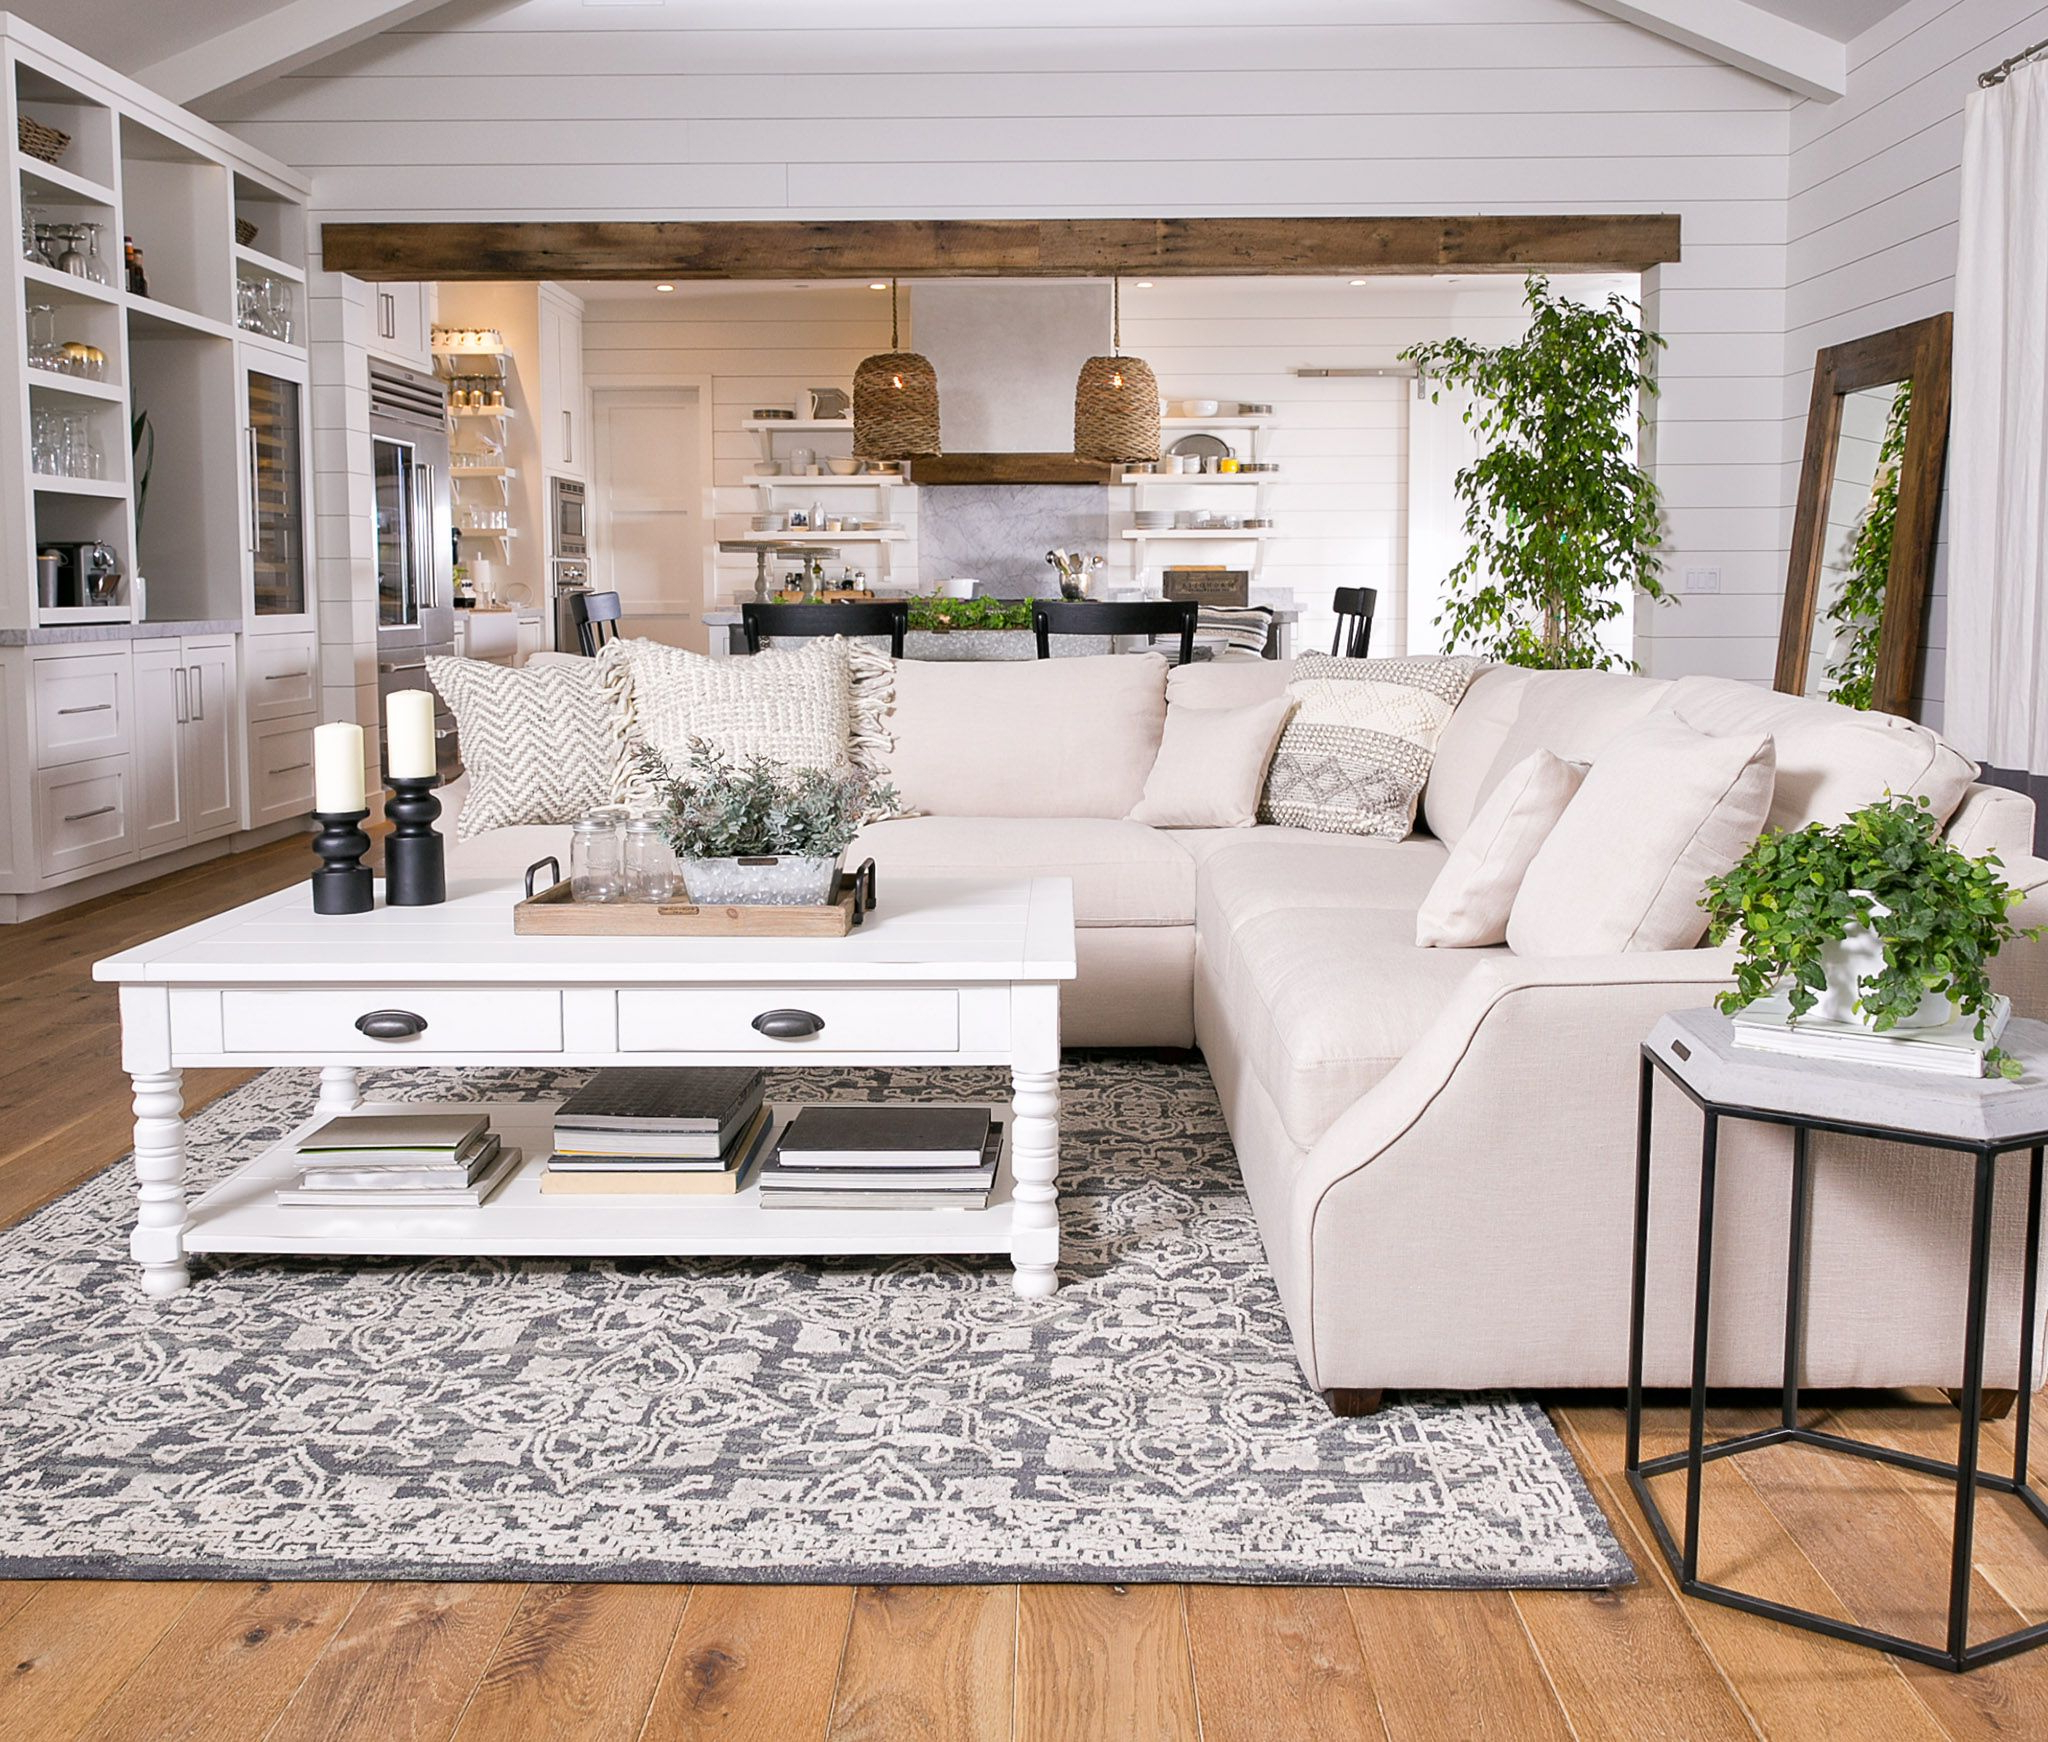 Trendy Magnolia Home Homestead 3 Piece Sectionaljoanna Gaines With Regard To Magnolia Home Homestead 4 Piece Sectionals By Joanna Gaines (View 18 of 20)